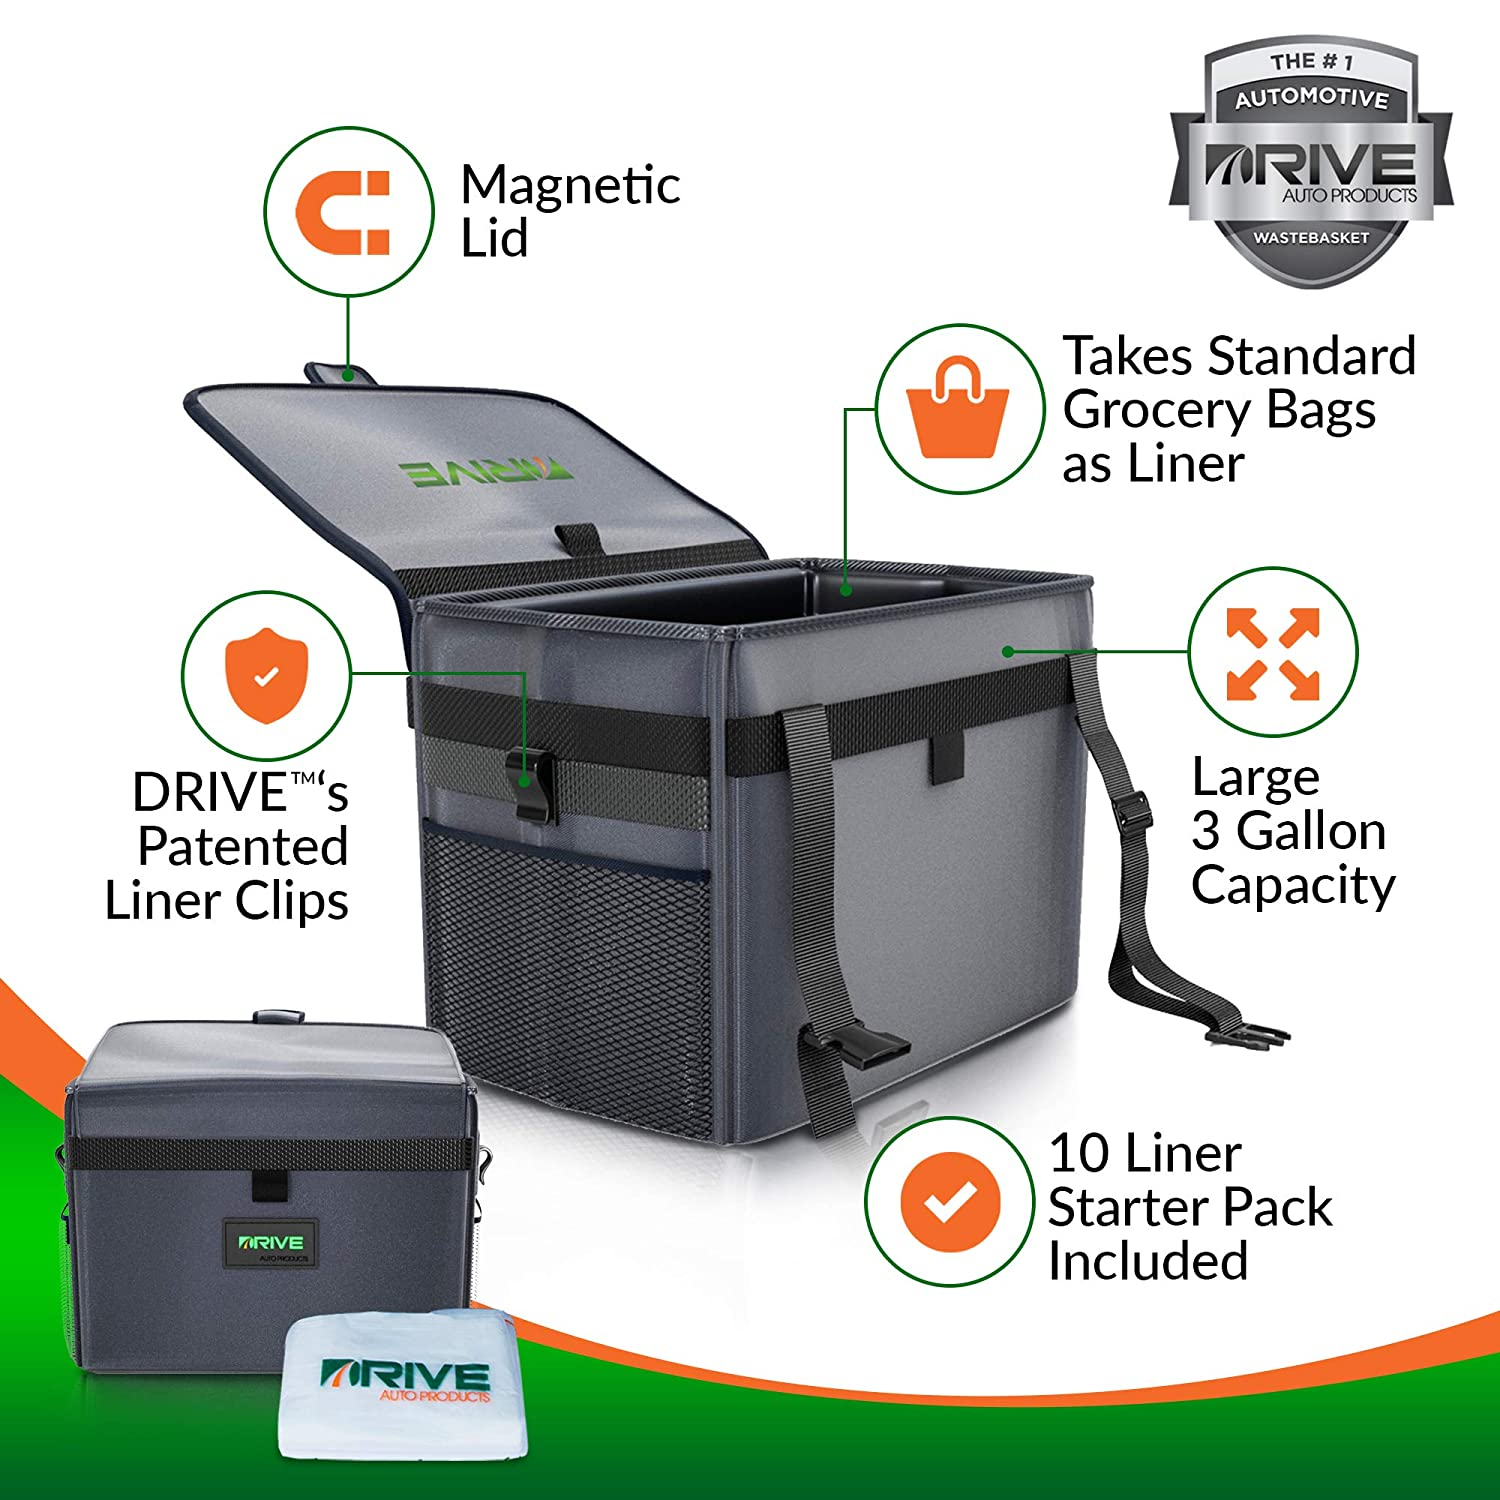 Recycle Auto Garbage Kit is Waterproof Takes Grocery Bag Size Disposable Liners 10-Piece Starter Pack Included Best Large Car Trash Can for Litter Makes a Great Cooler /& Gift The DRIVE Bin XL